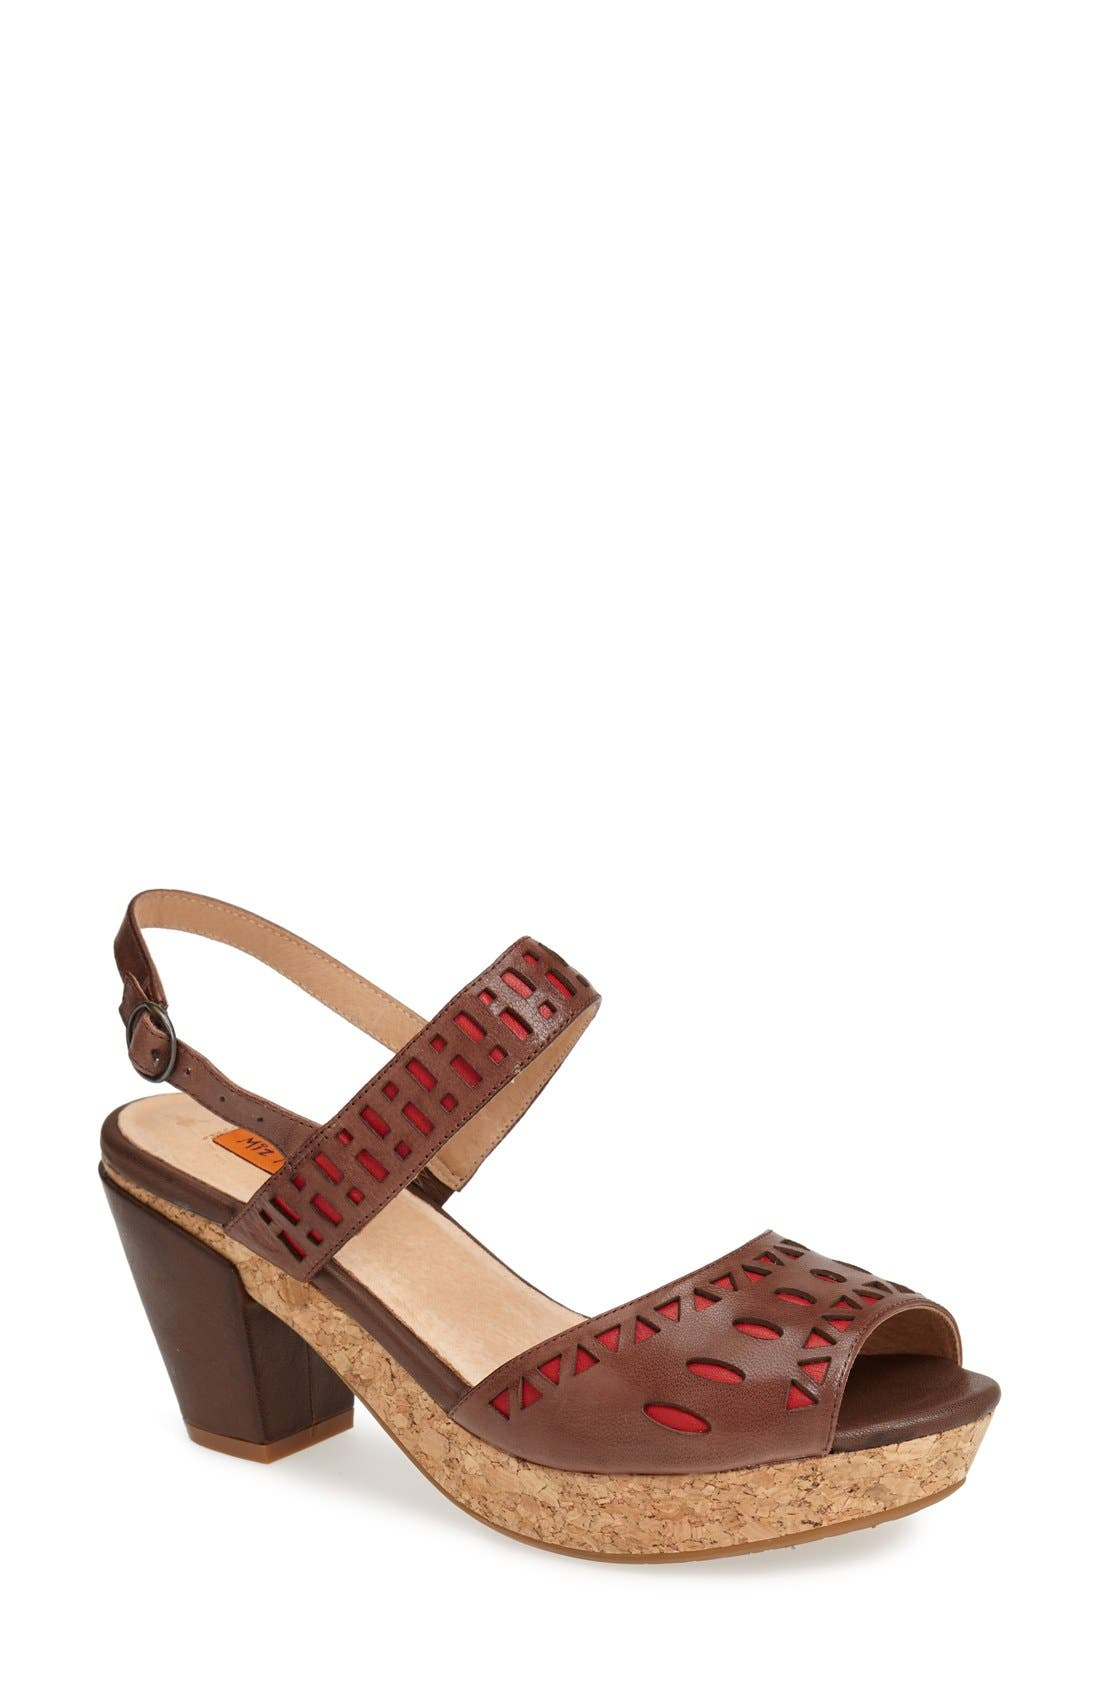 Alternate Image 1 Selected - Miz Mooz 'Roma' Perforated Leather Sandal (Women)(Special Purchase)